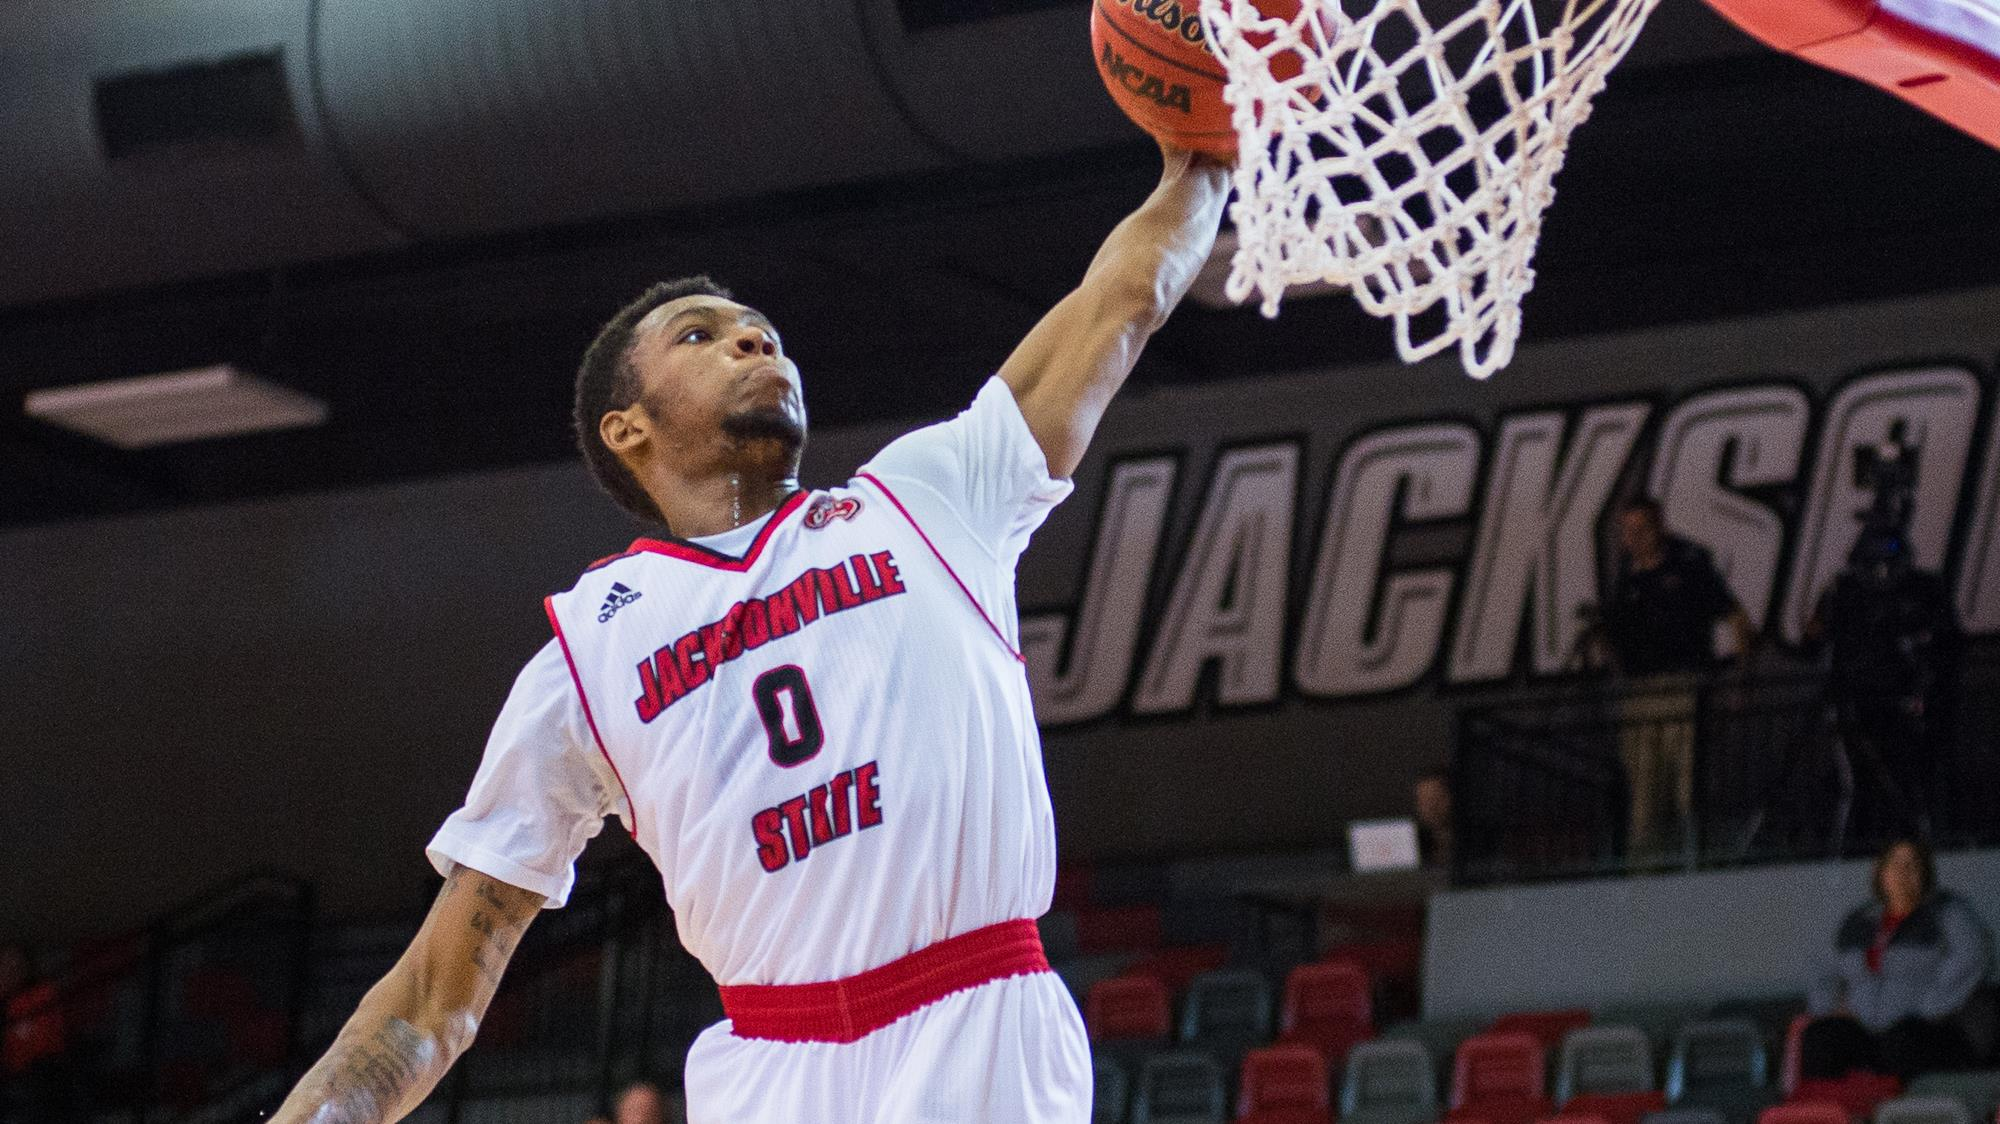 gamecock defense earns 84-53 win over wcu in cancun on tuesday